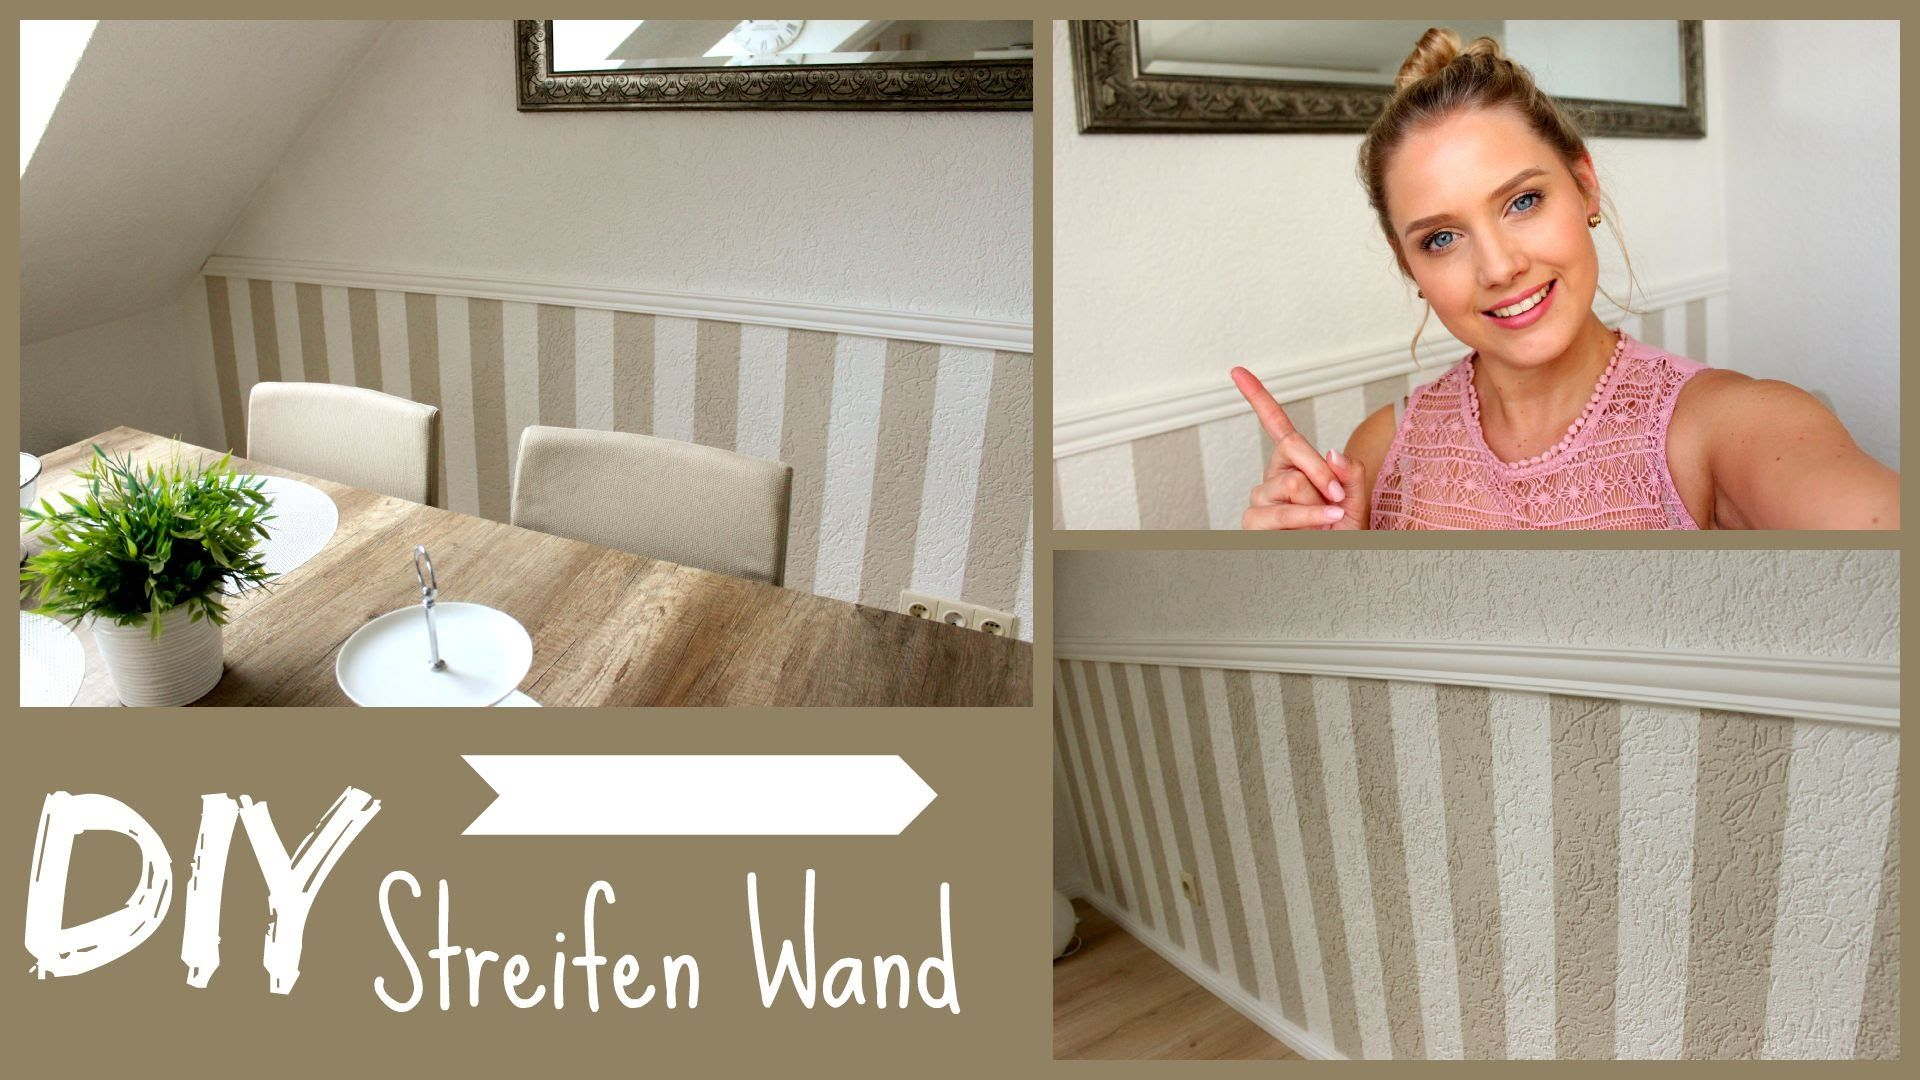 diy wandgestaltung streifenwand mit stuckleiste dekorasyon. Black Bedroom Furniture Sets. Home Design Ideas